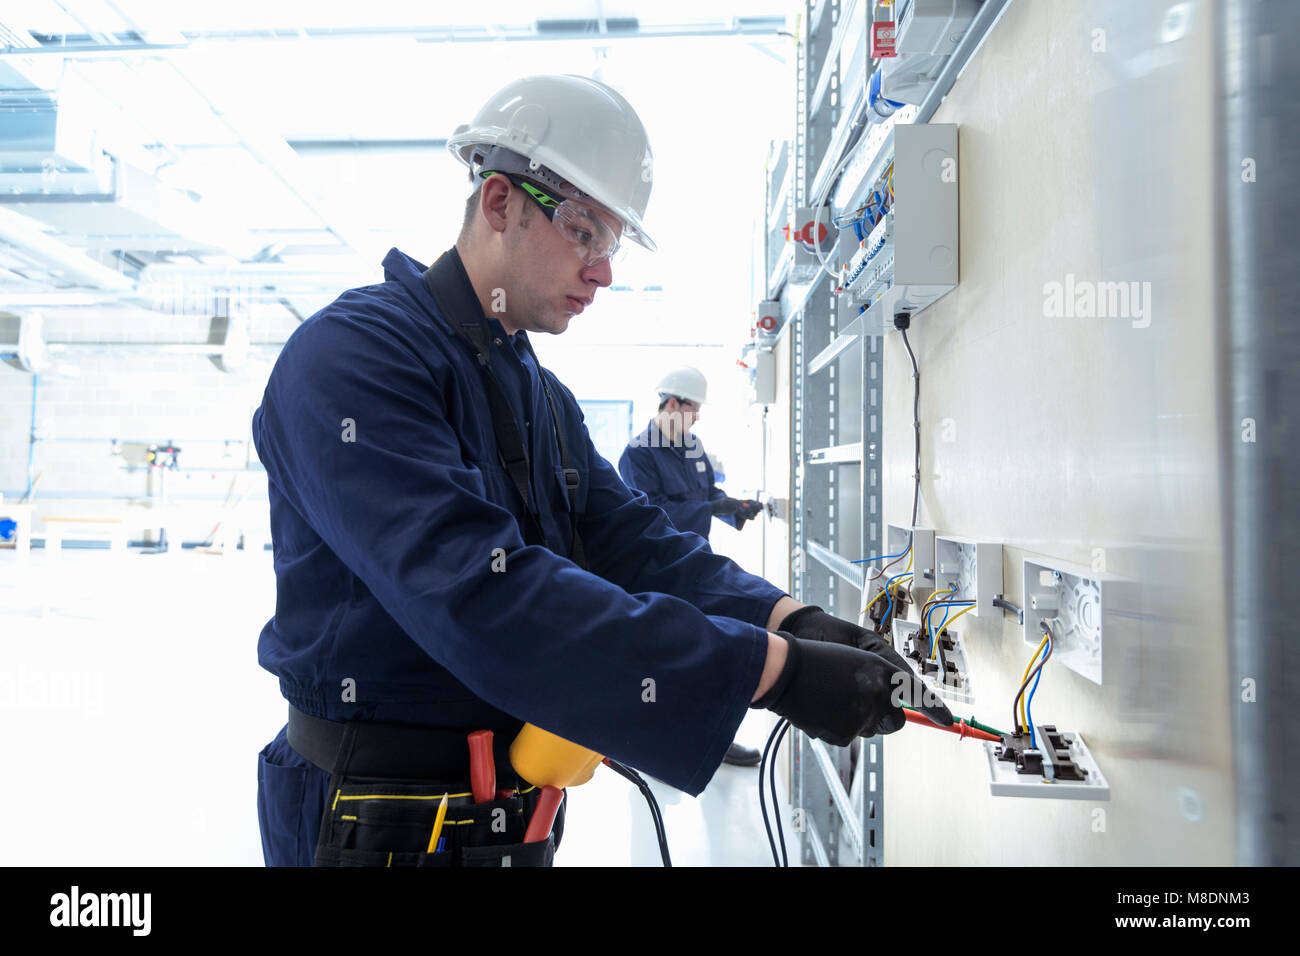 Electrical engineers testing electrical equipment - Stock Image